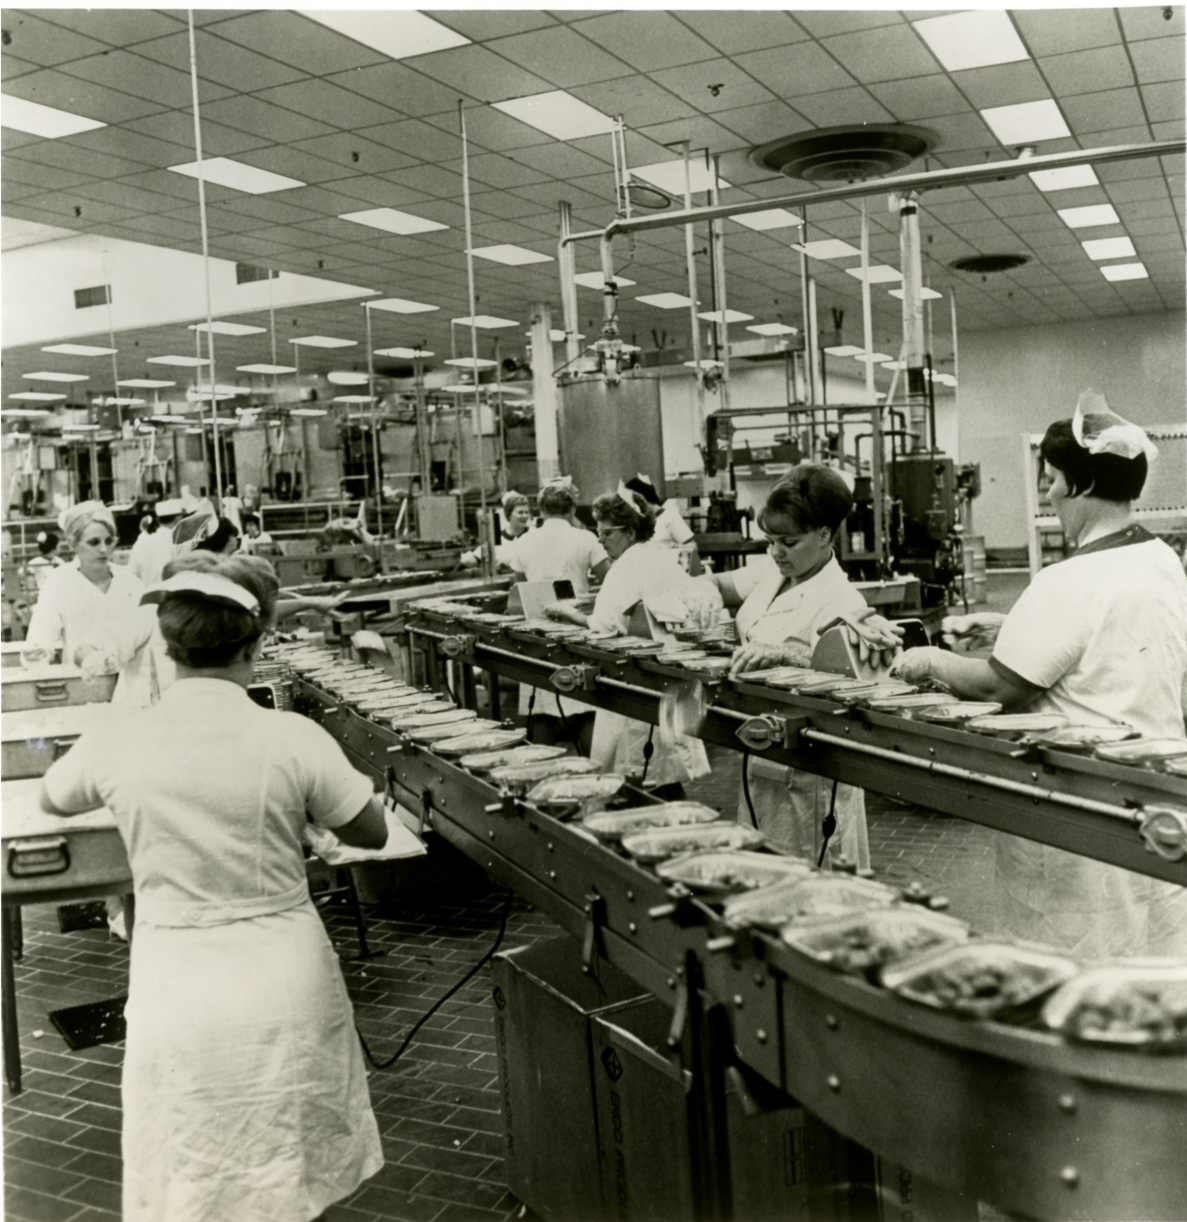 Women working on the Assembly line at the processing plant in Solon, Ohio. Isolation/Quarantine Foods for Apollo 11 Astronauts from Stouffer's Press Materials.